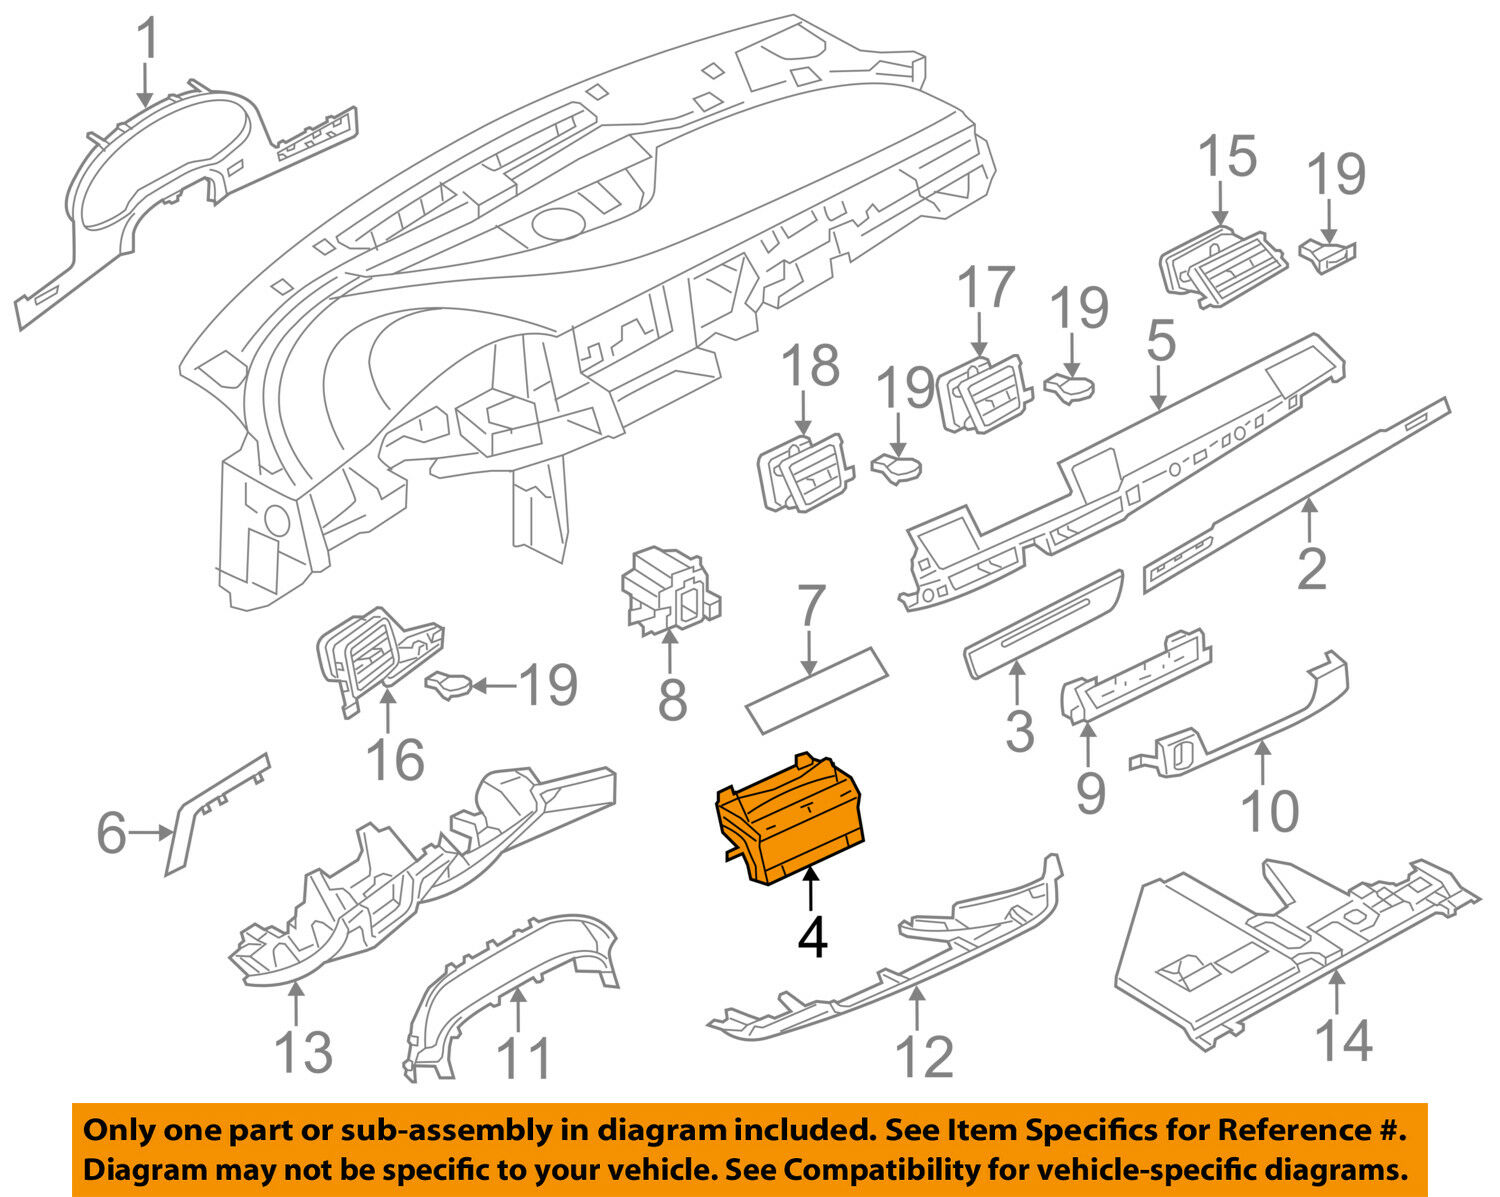 Audi D2 Engine Diagram Wiring Library Oem 14 15 A8 Quattro Instrument Panel Dash Mount 4h0857273d For Sale